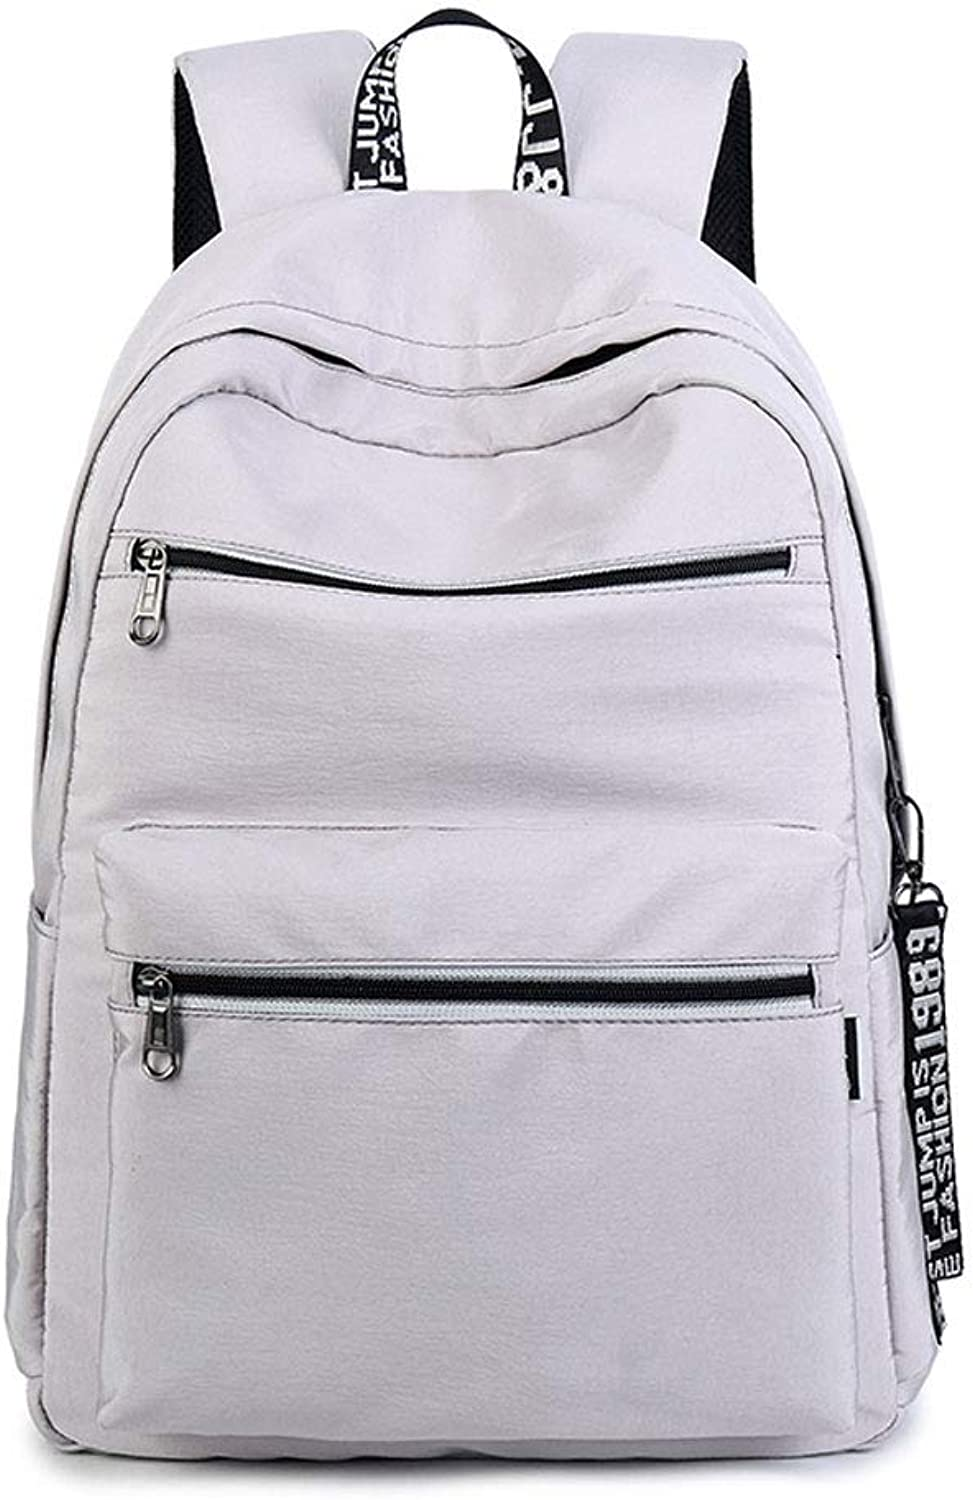 a7b79bc57 Joker Simple High School Student Backpack Campus Large Capacity Tide  Backpack